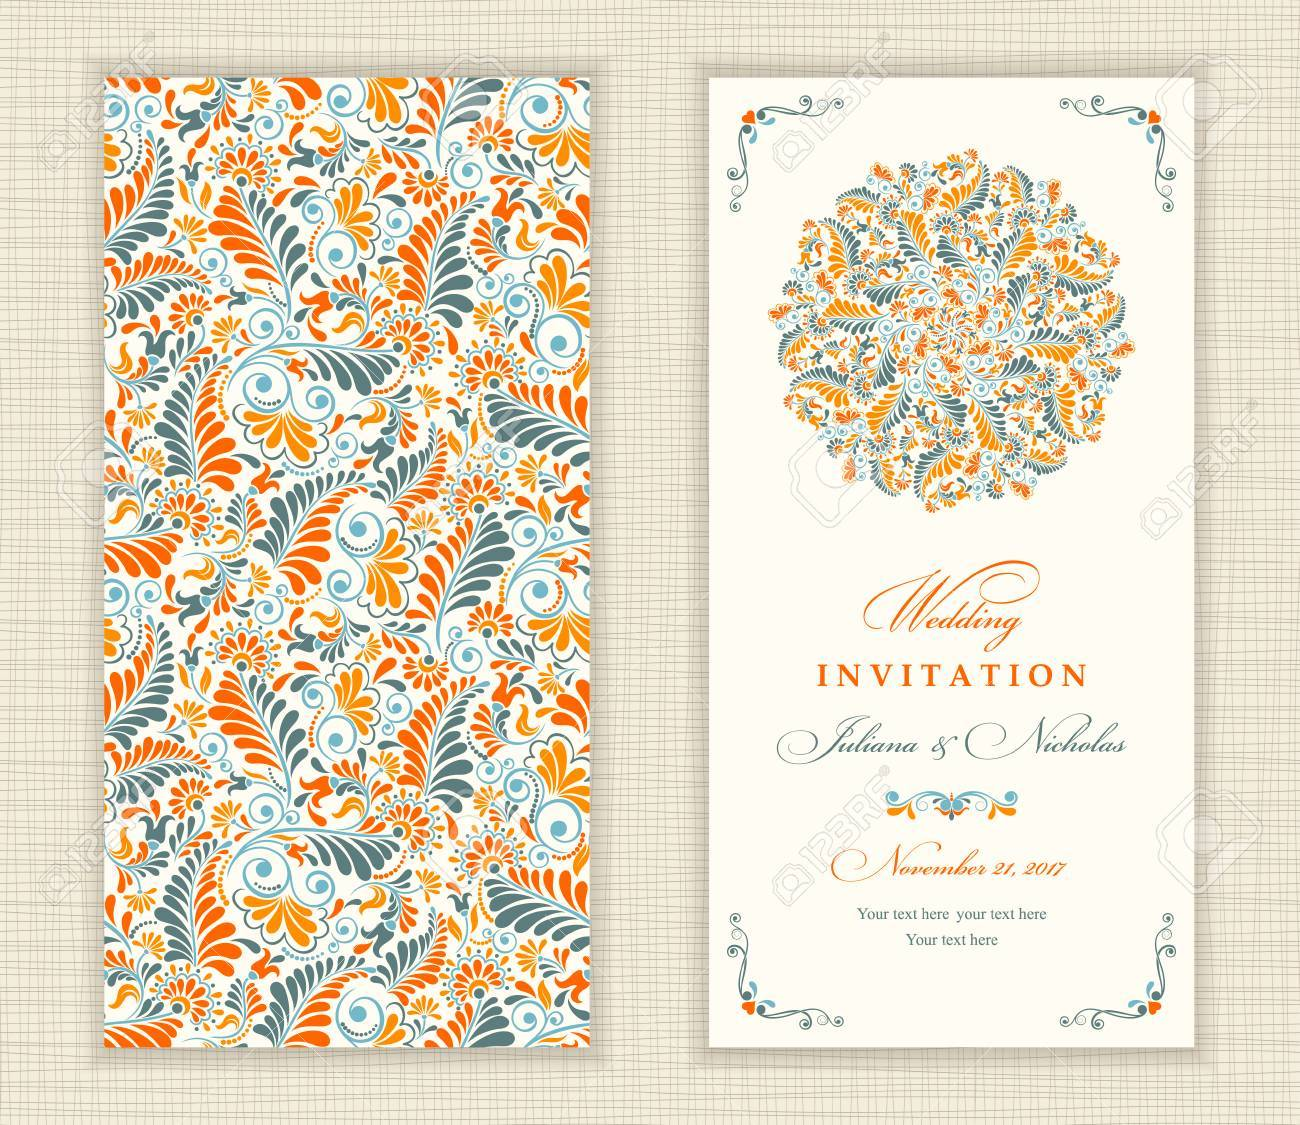 Wedding Invitation Card Ethnic Style The Front And Rear Side Summer Pattern Of Flowers And Leaves